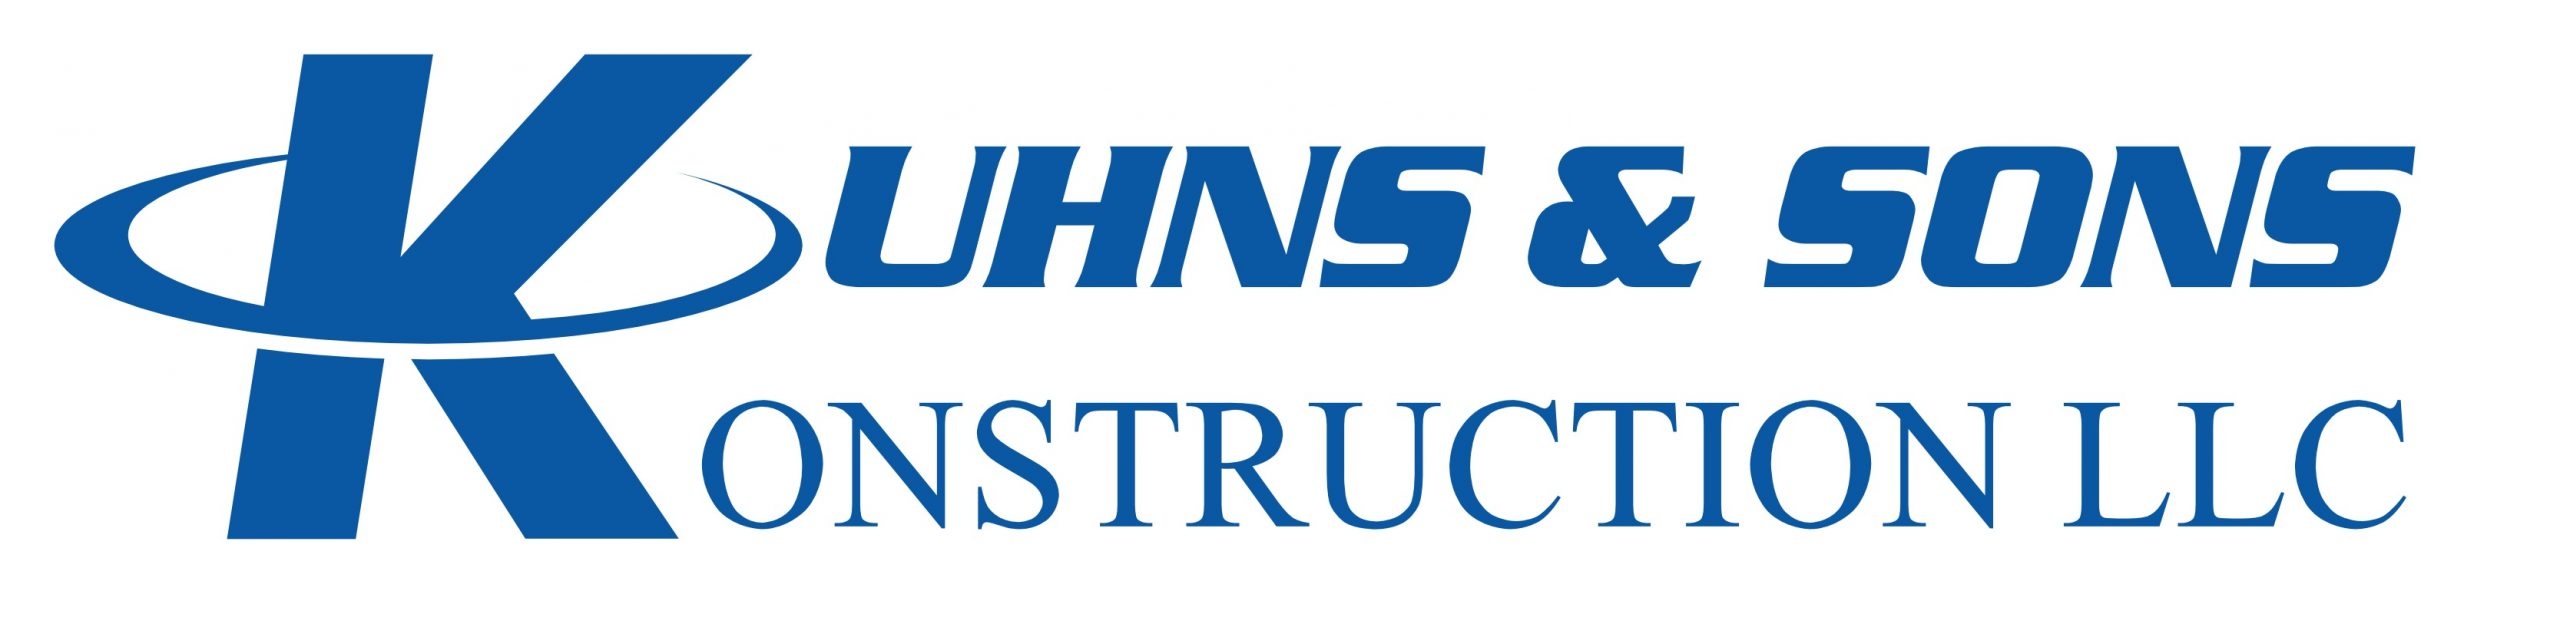 Kuhns and Sons Construction LLC